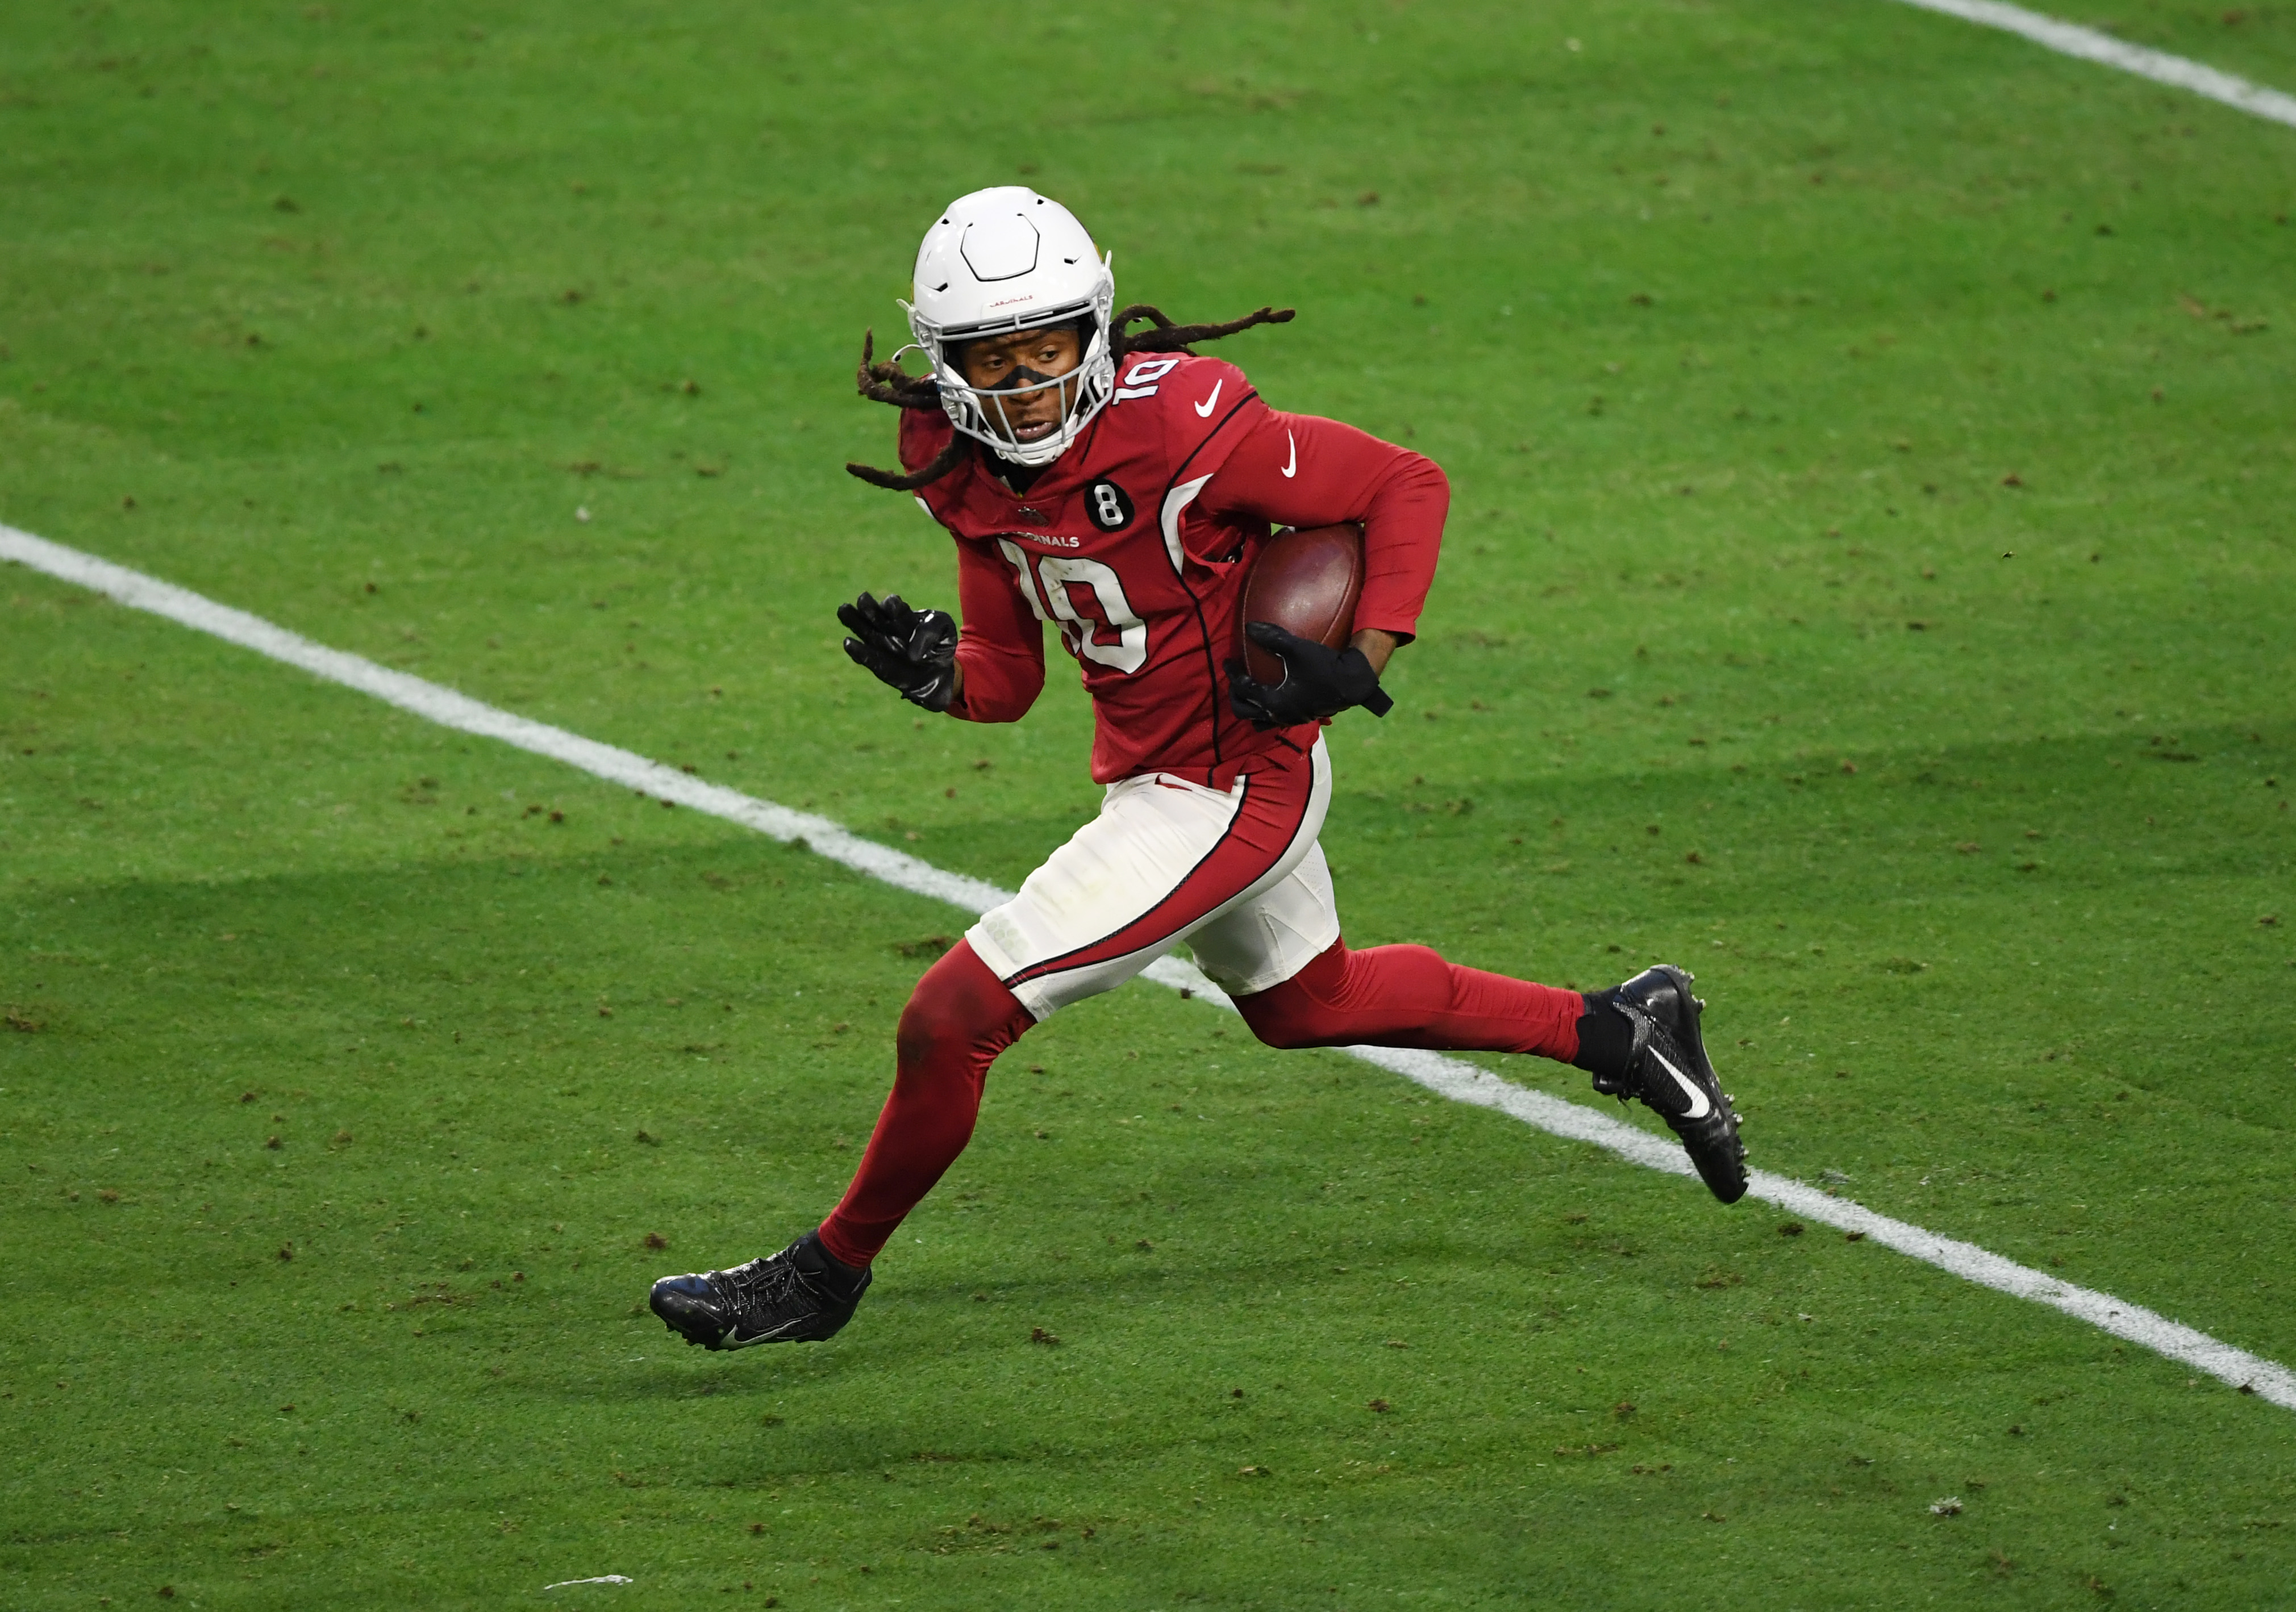 DeAndre Hopkins #10 of the Arizona Cardinals runs with the ball against the Philadelphia Eagles at State Farm Stadium on December 20, 2020 in Glendale, Arizona.